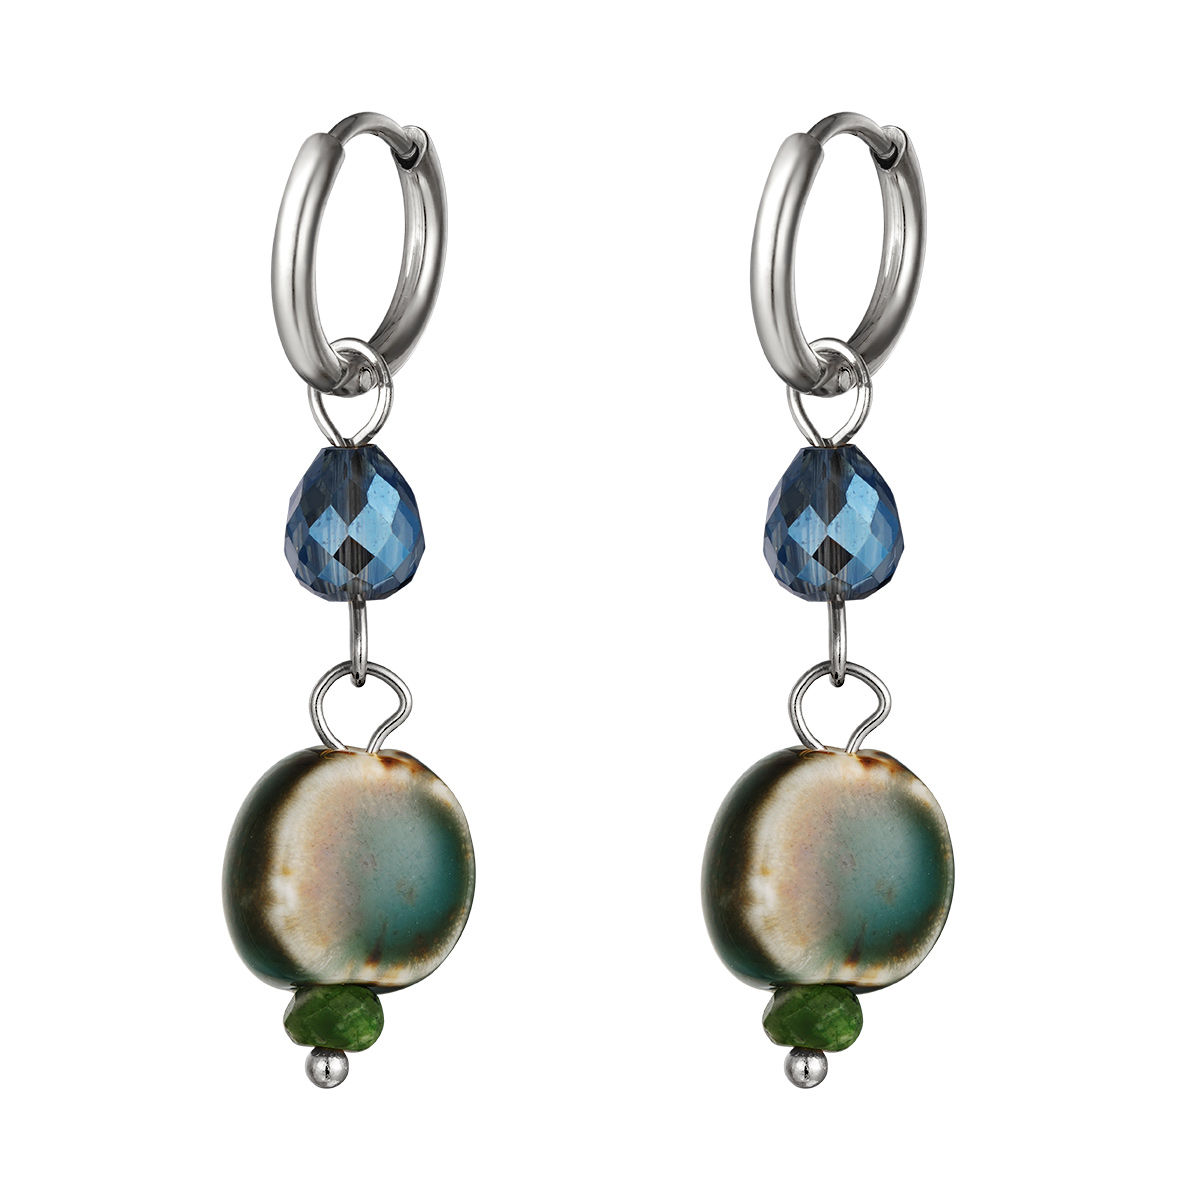 Earrings with Colored Charm Small